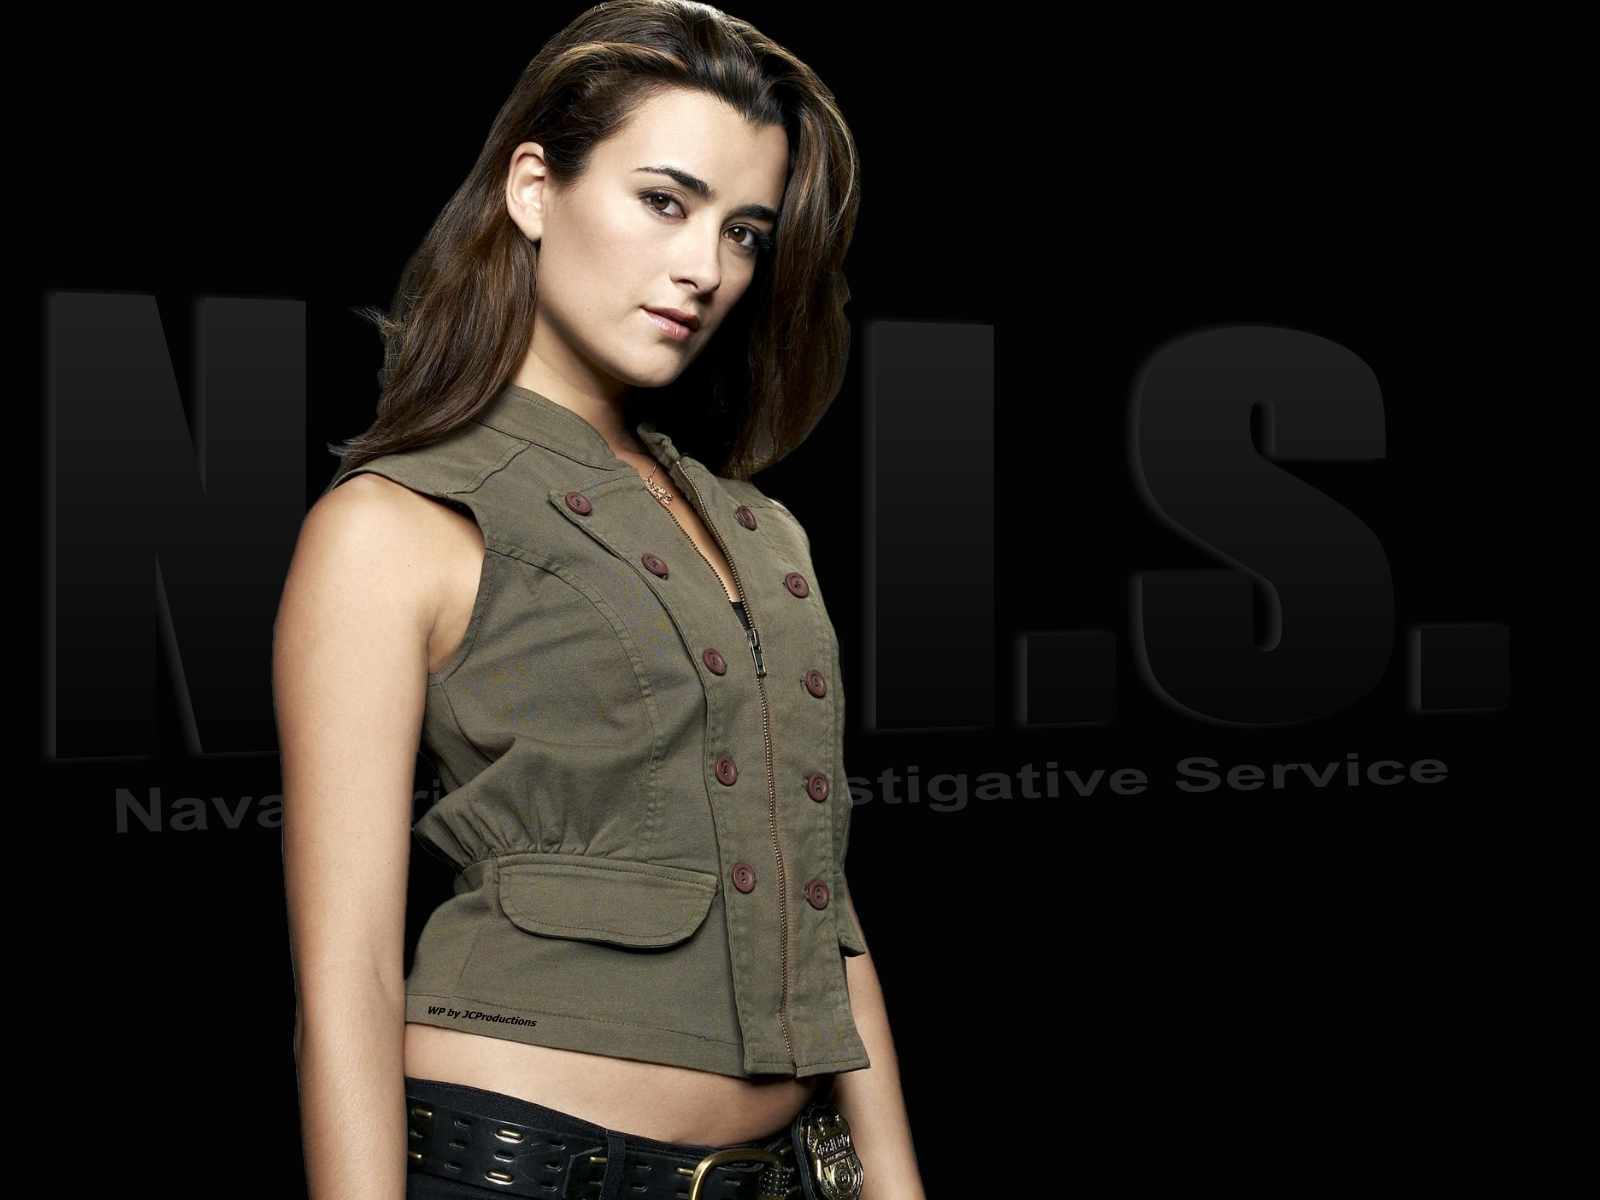 ncis girls images abby - photo #28